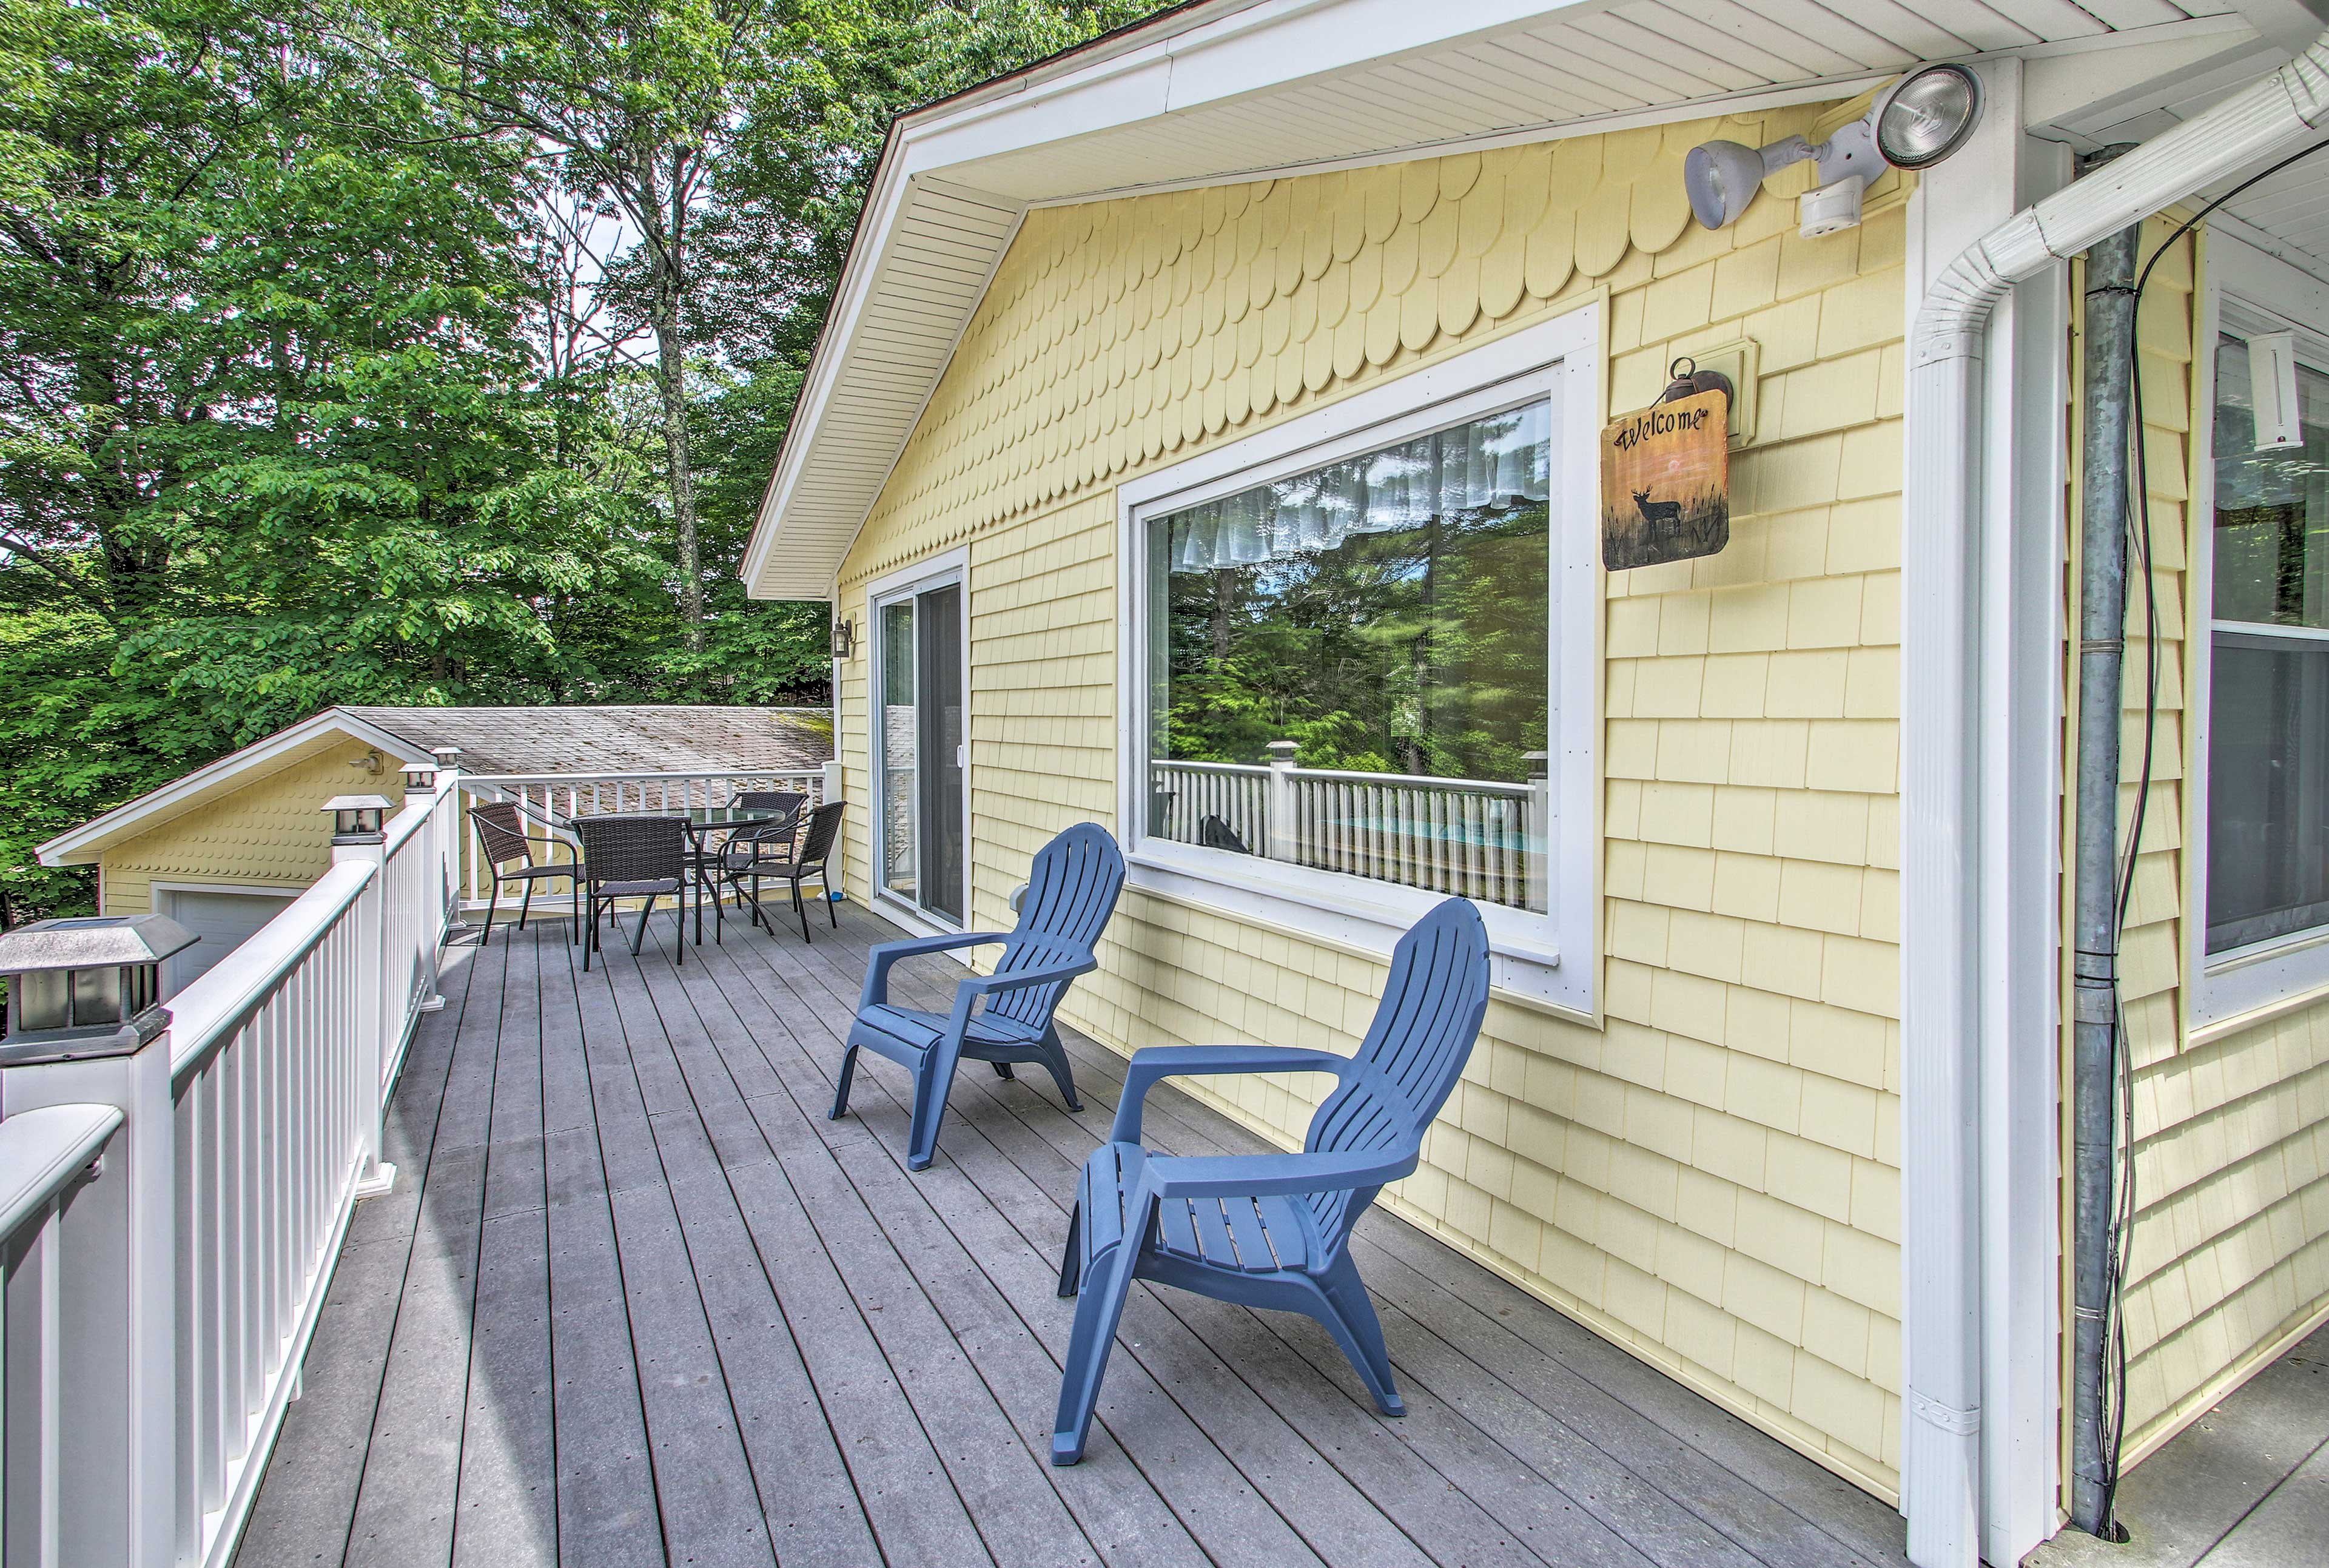 Enjoy a relaxing afternoon on the deck of this 4-bed, 2-bath home.